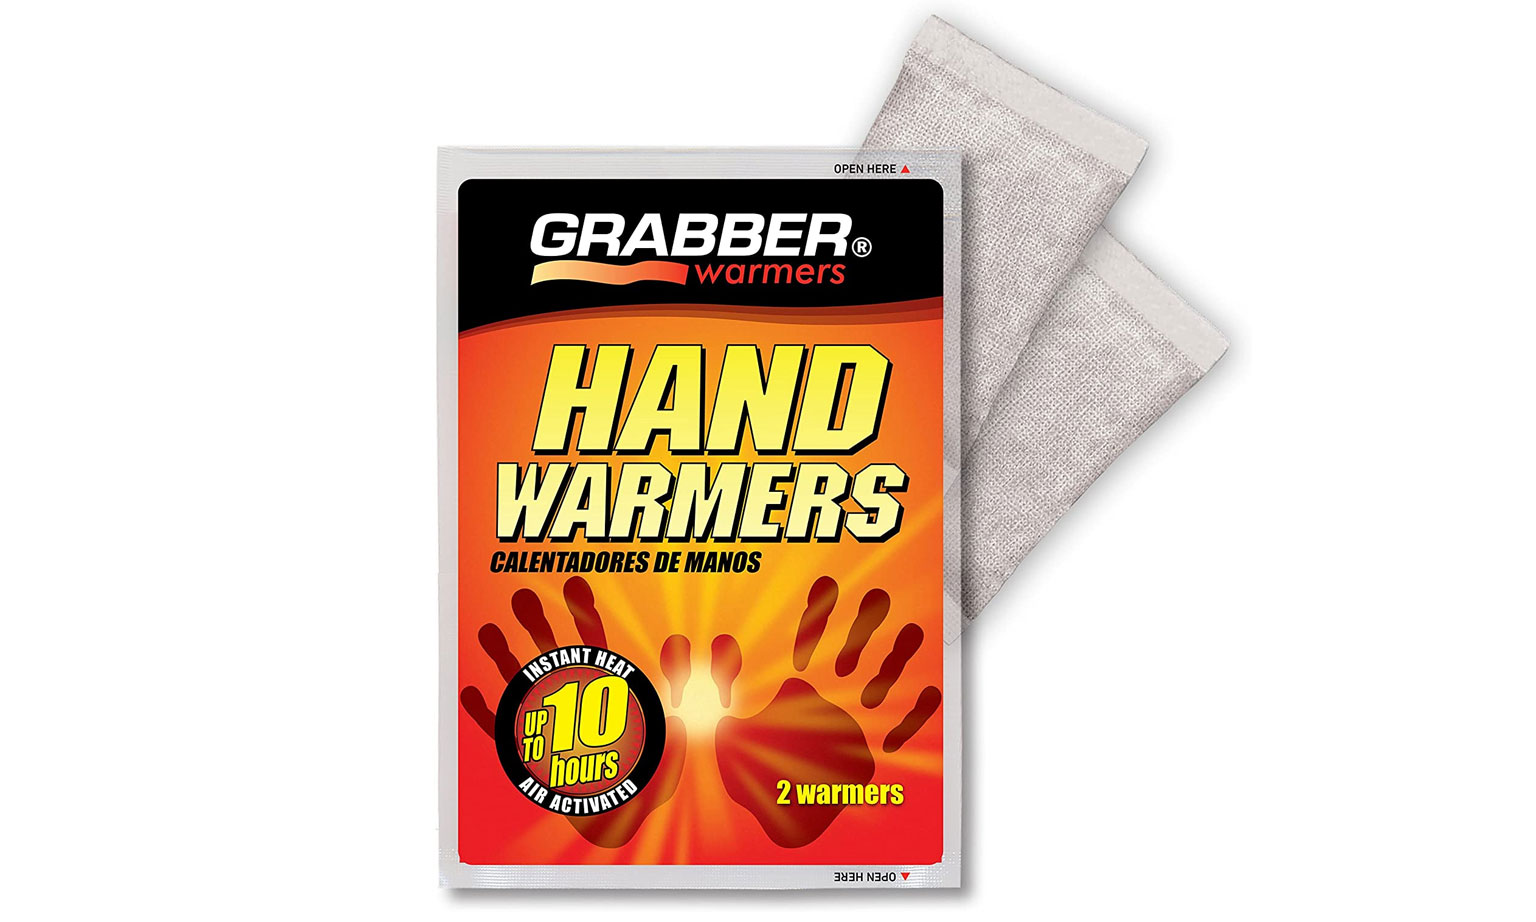 packet of Grabber 10-hour hand warmers